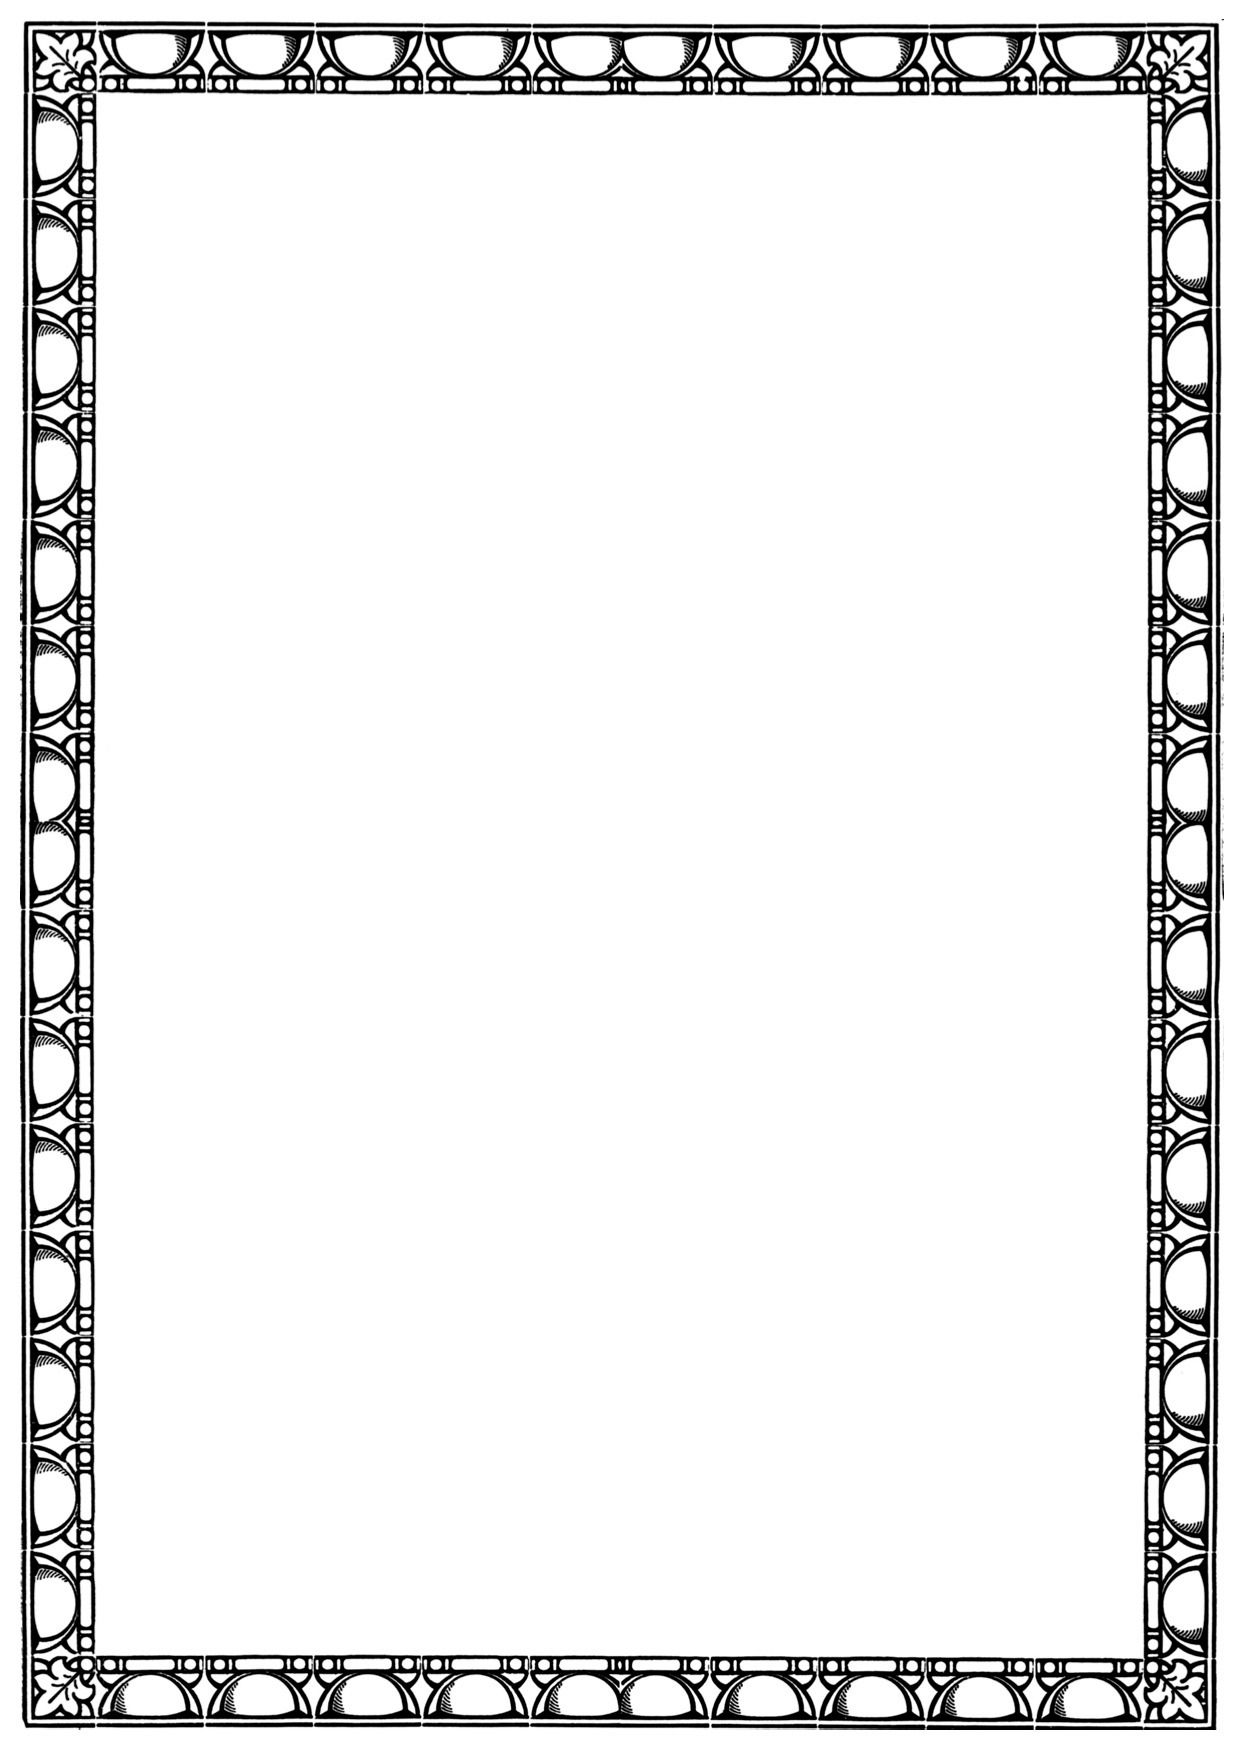 This is an image of Rare Free Printable Page Borders